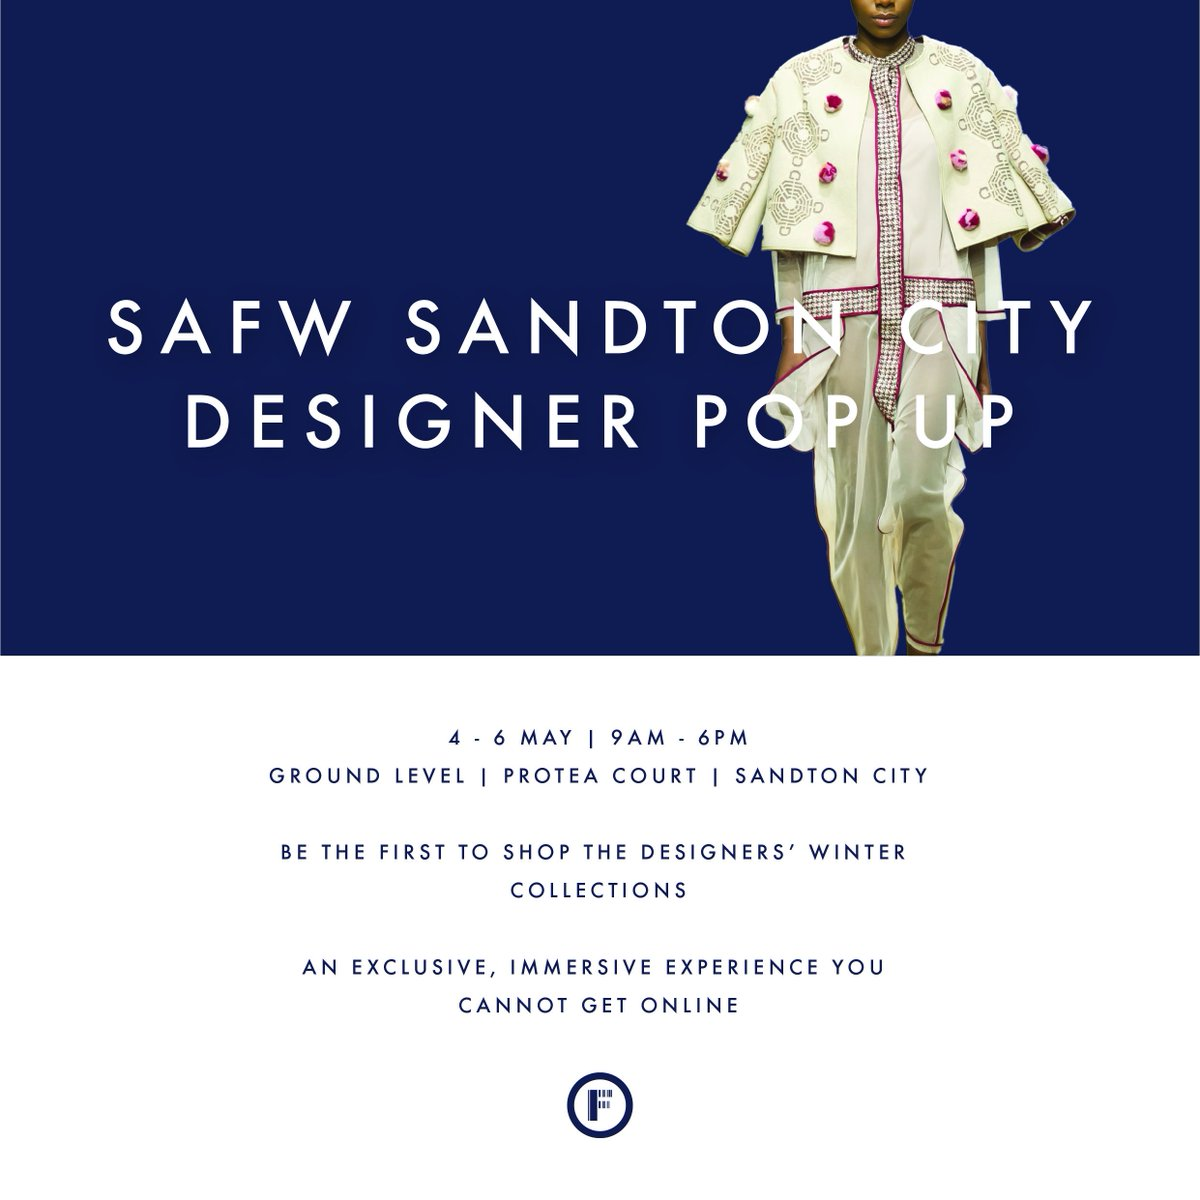 fe63bad113a7e3 ... curated winter collections from 16 designer brands, the #SAFW  #SandtonCityDesignerPopUp is a fashion highlight, not to be missed! Shop up  a storm at the ...